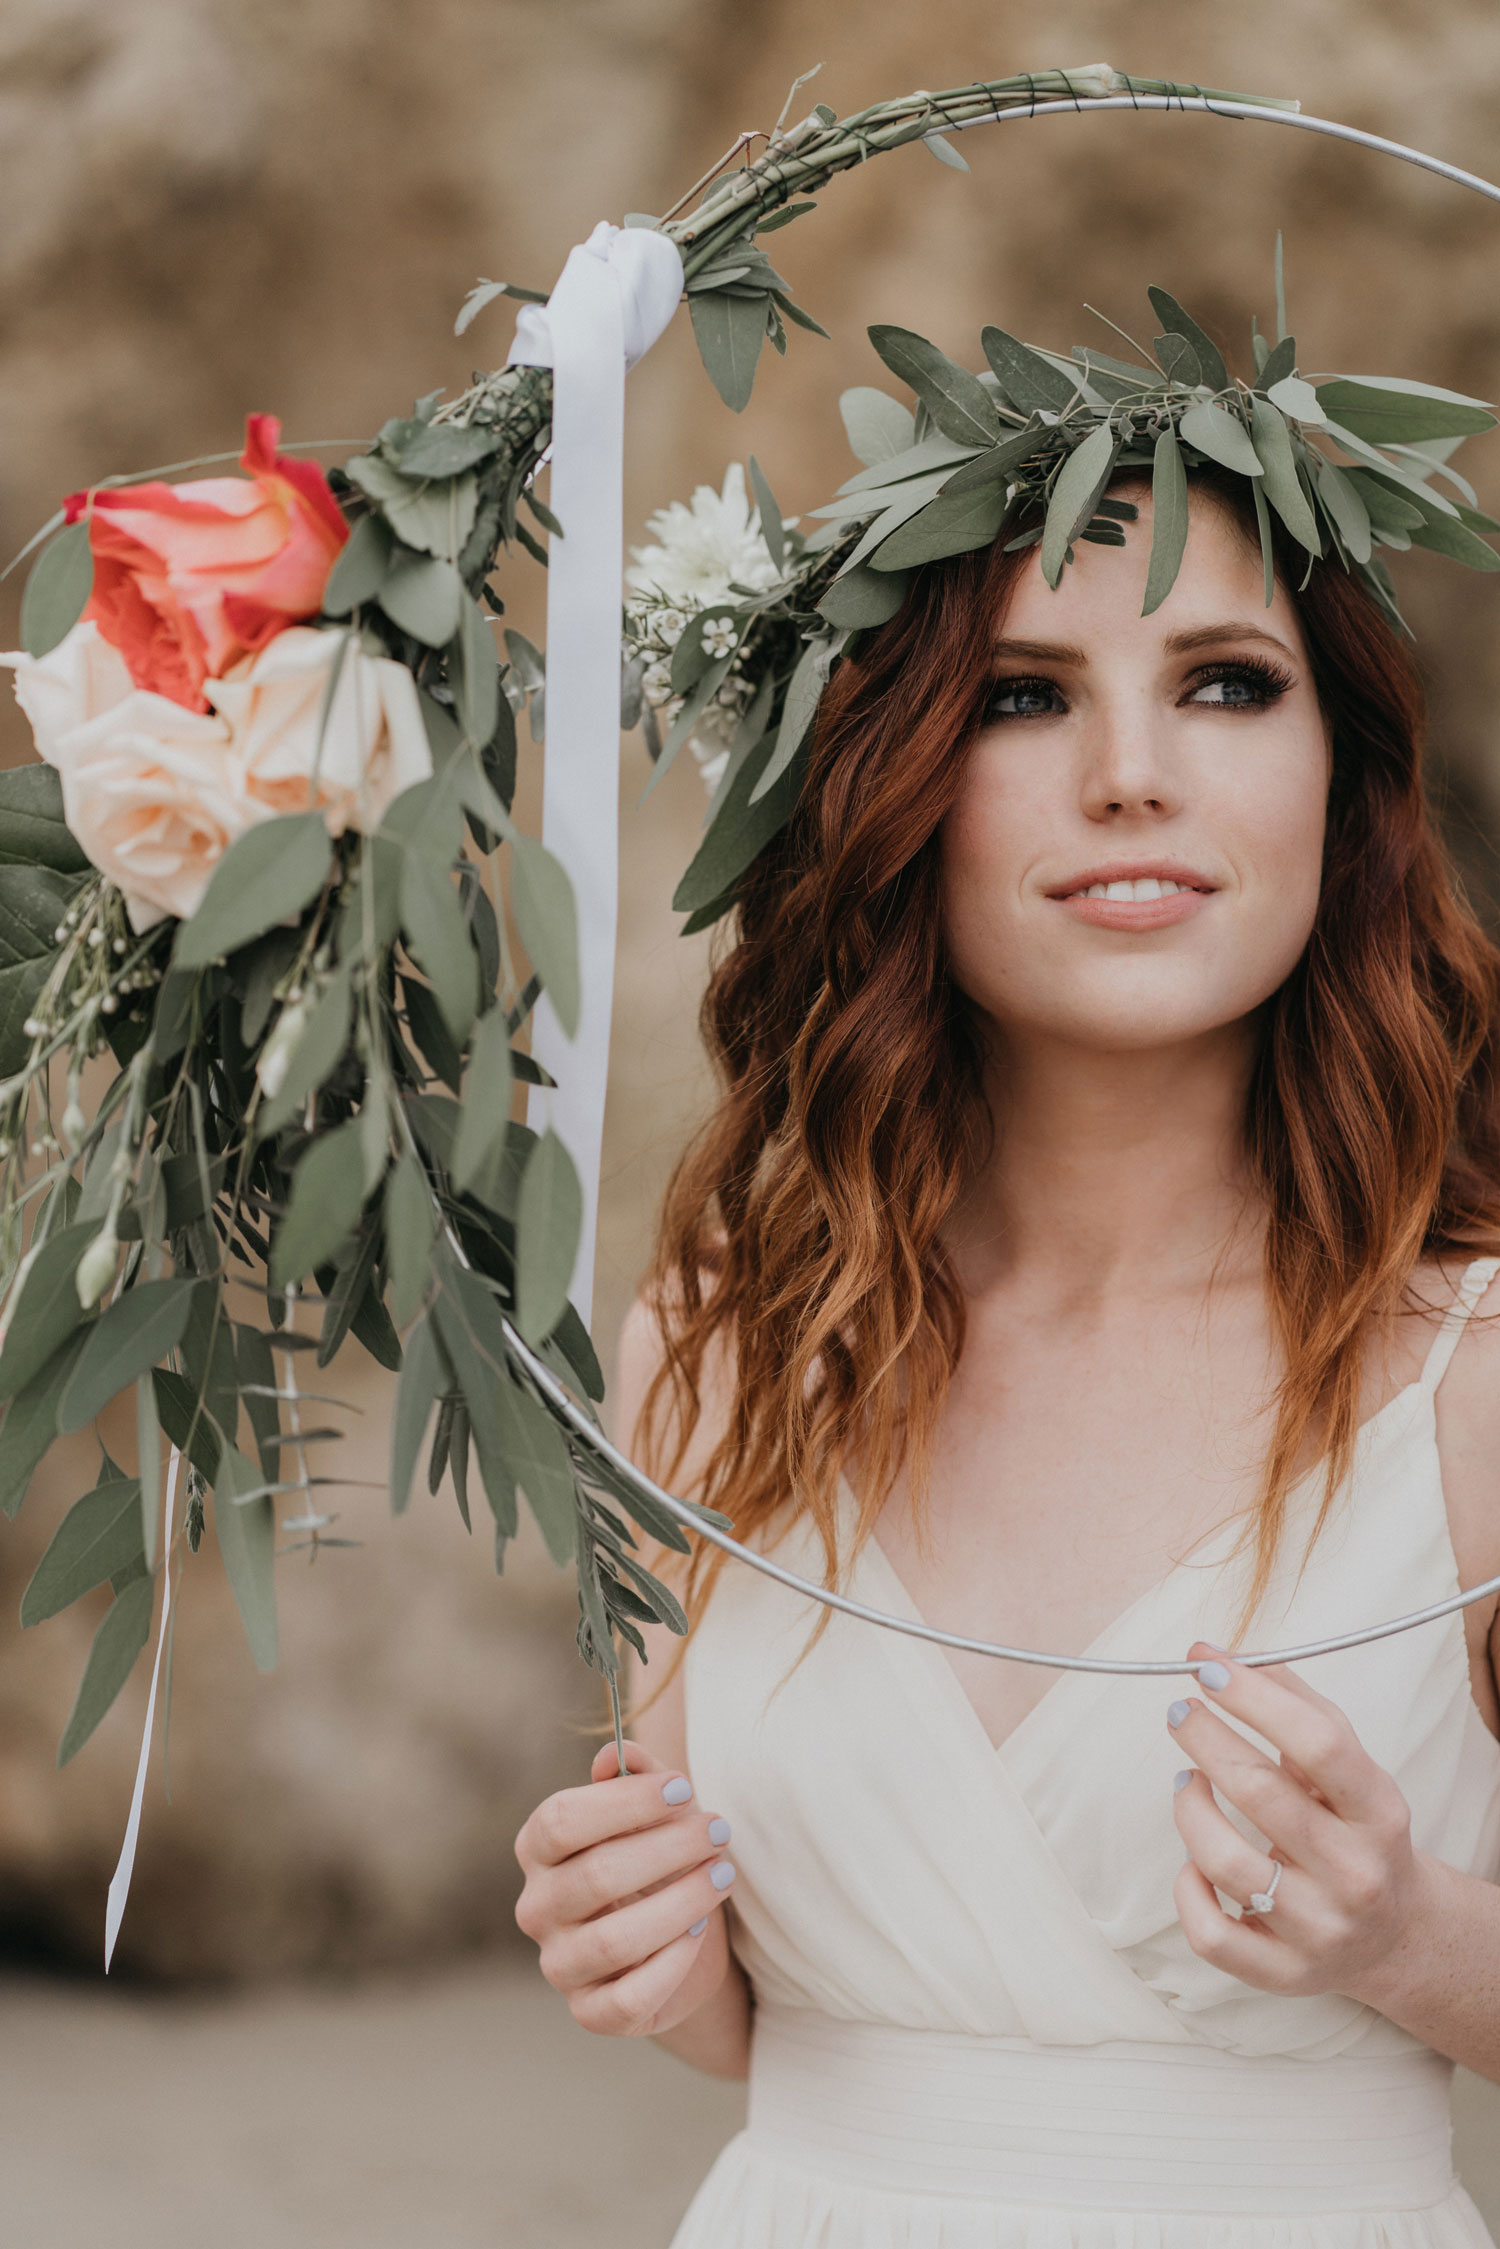 Echosmith Sydney Sierota engagement shoot flower crown with circle of flowers